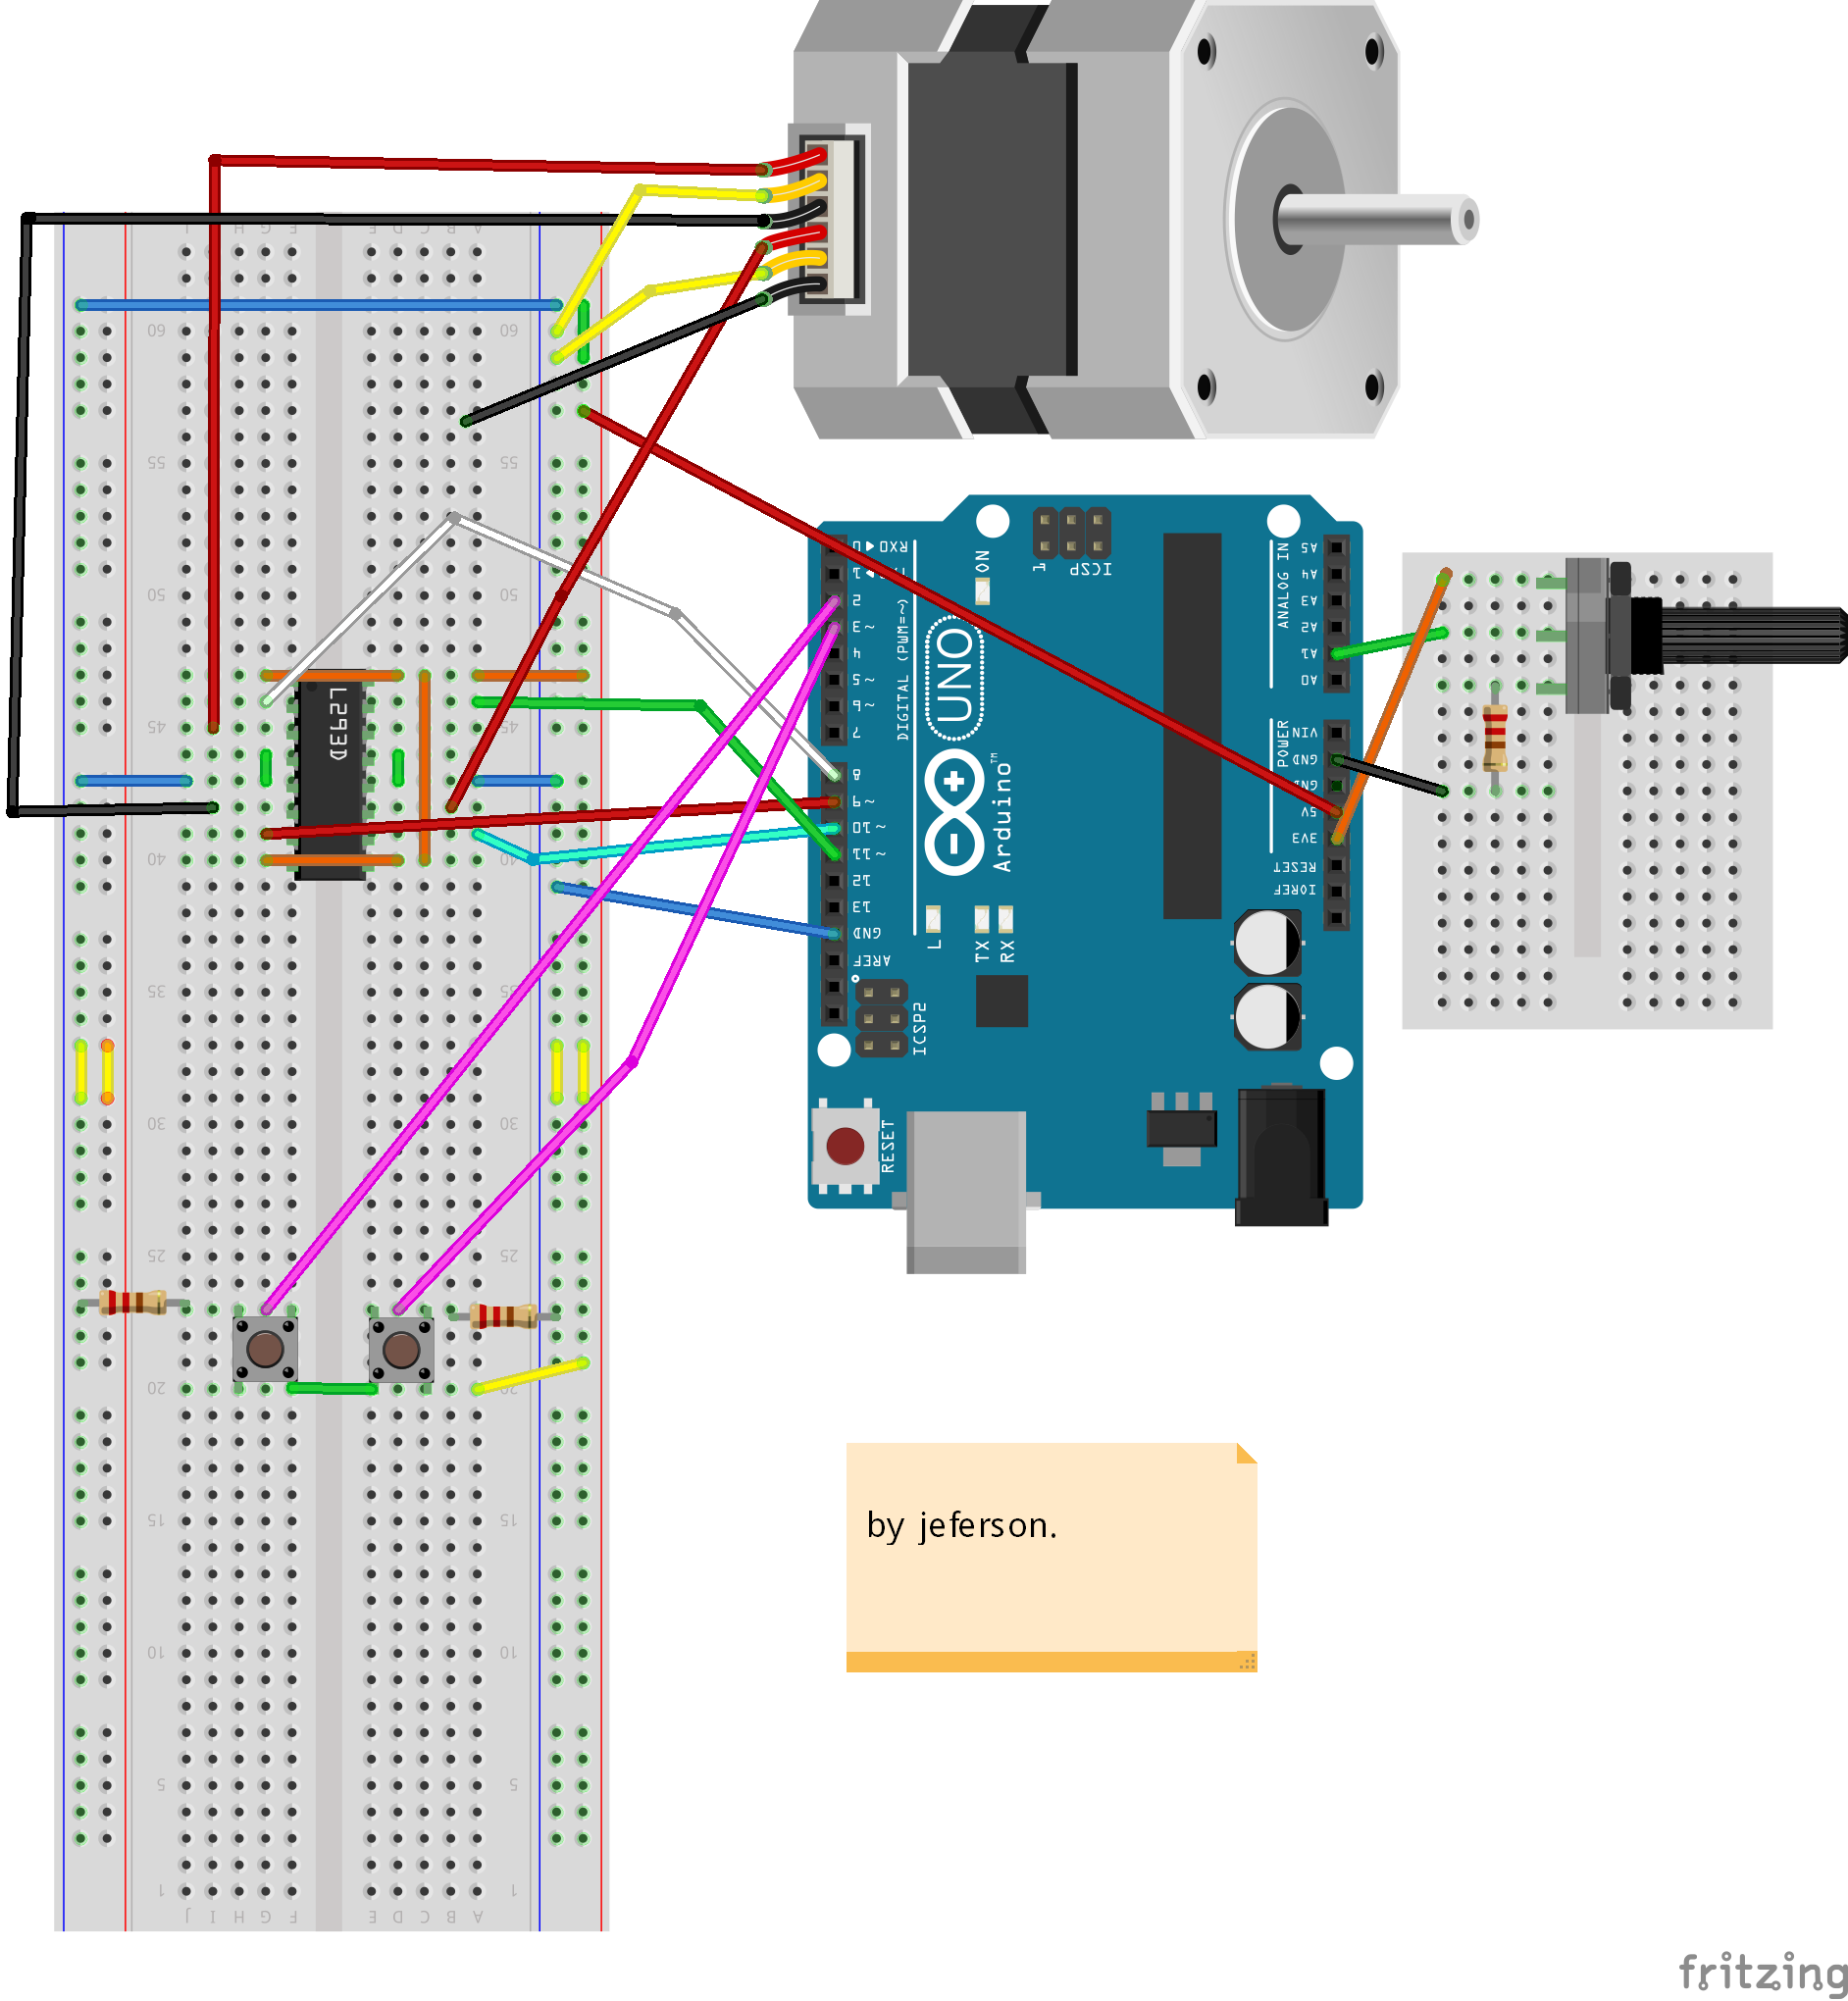 Stair Lights With Arduino: Control The Direction And Speed Of Stepper Motor Using